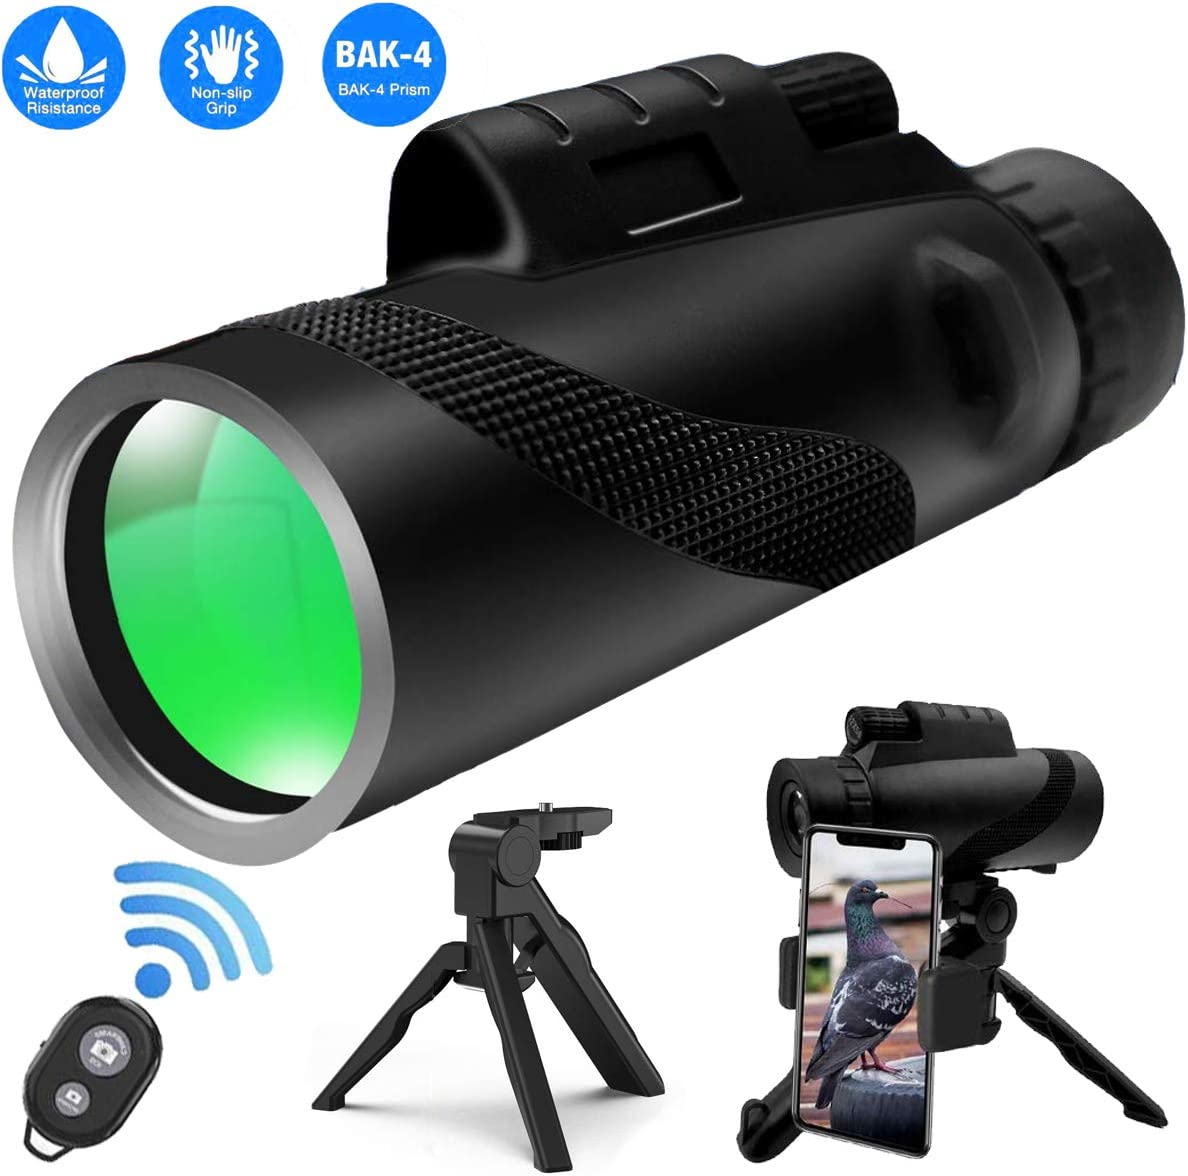 Monocular Telescope, 12×50 Monocular Scope with BAK4 Prism, Rotating Eye Mask, Phone Adapter and Wireless Camera Shutter Remote Control for Bird Watching Hunting Camping Travelling